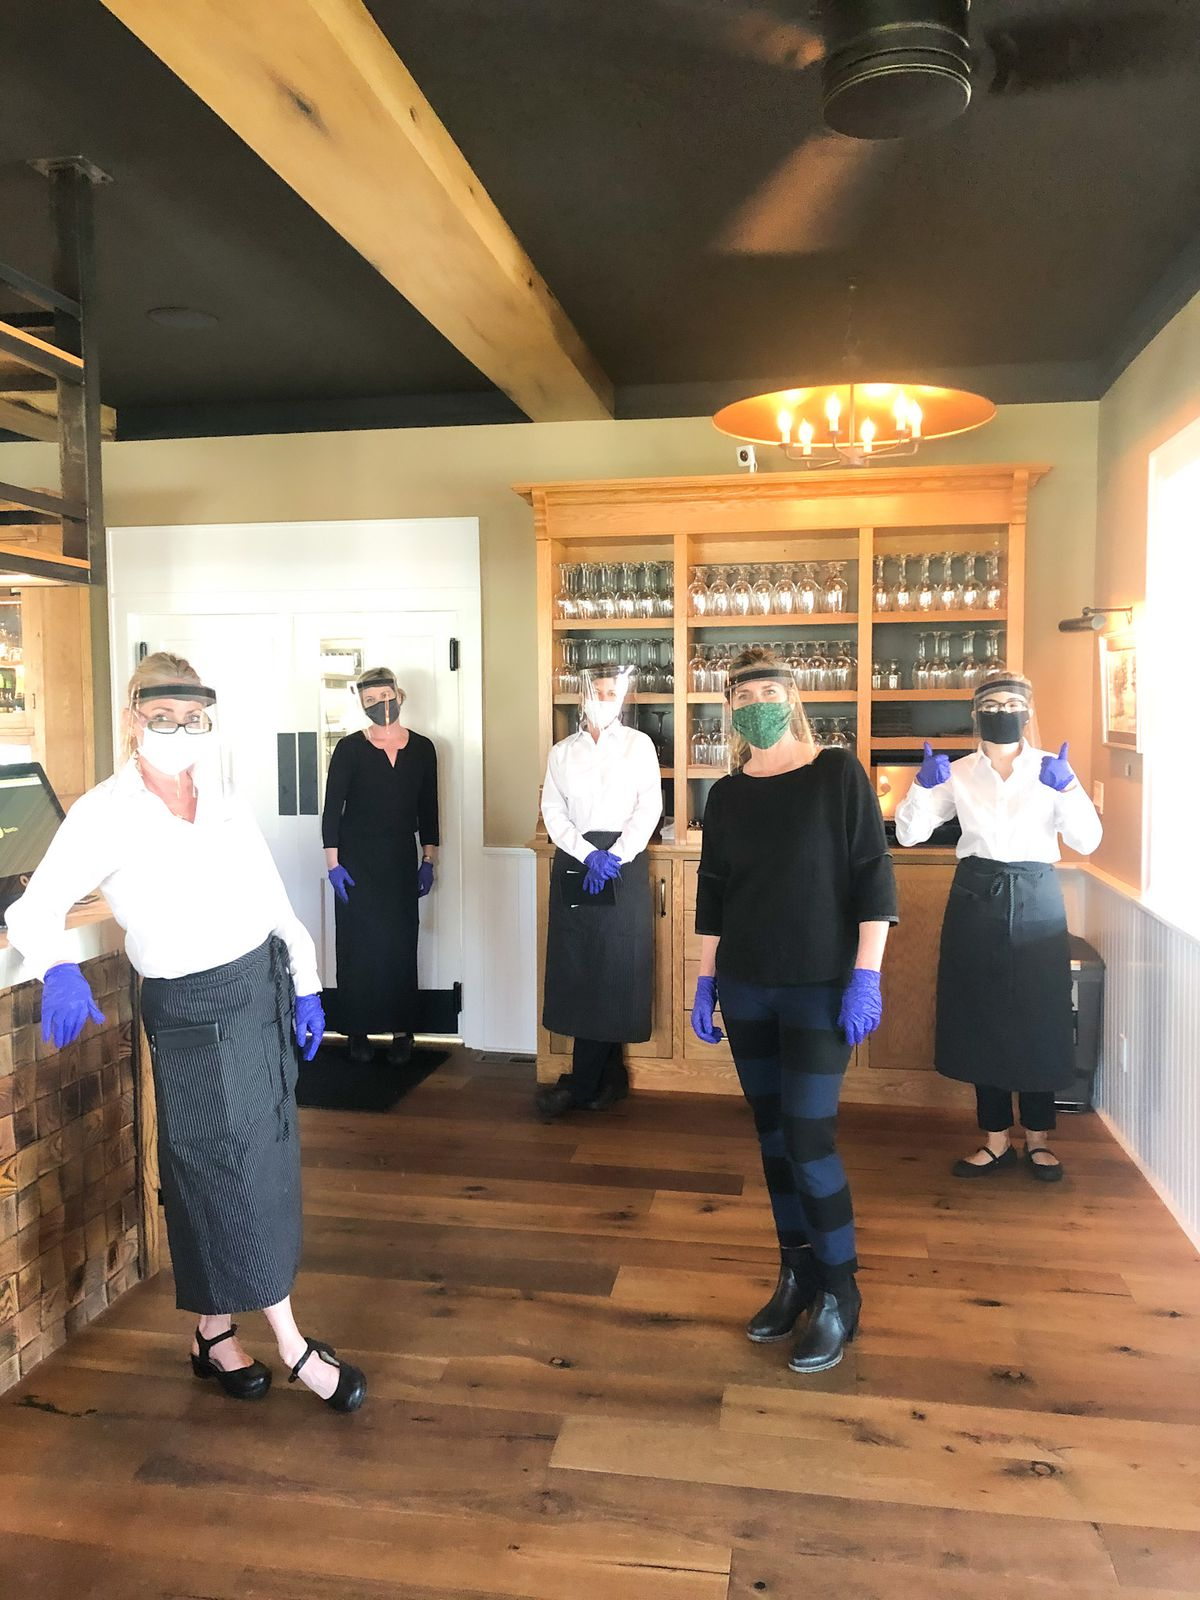 Five women stand at the entrance wearing PPE and aprons at Riverside Inn.